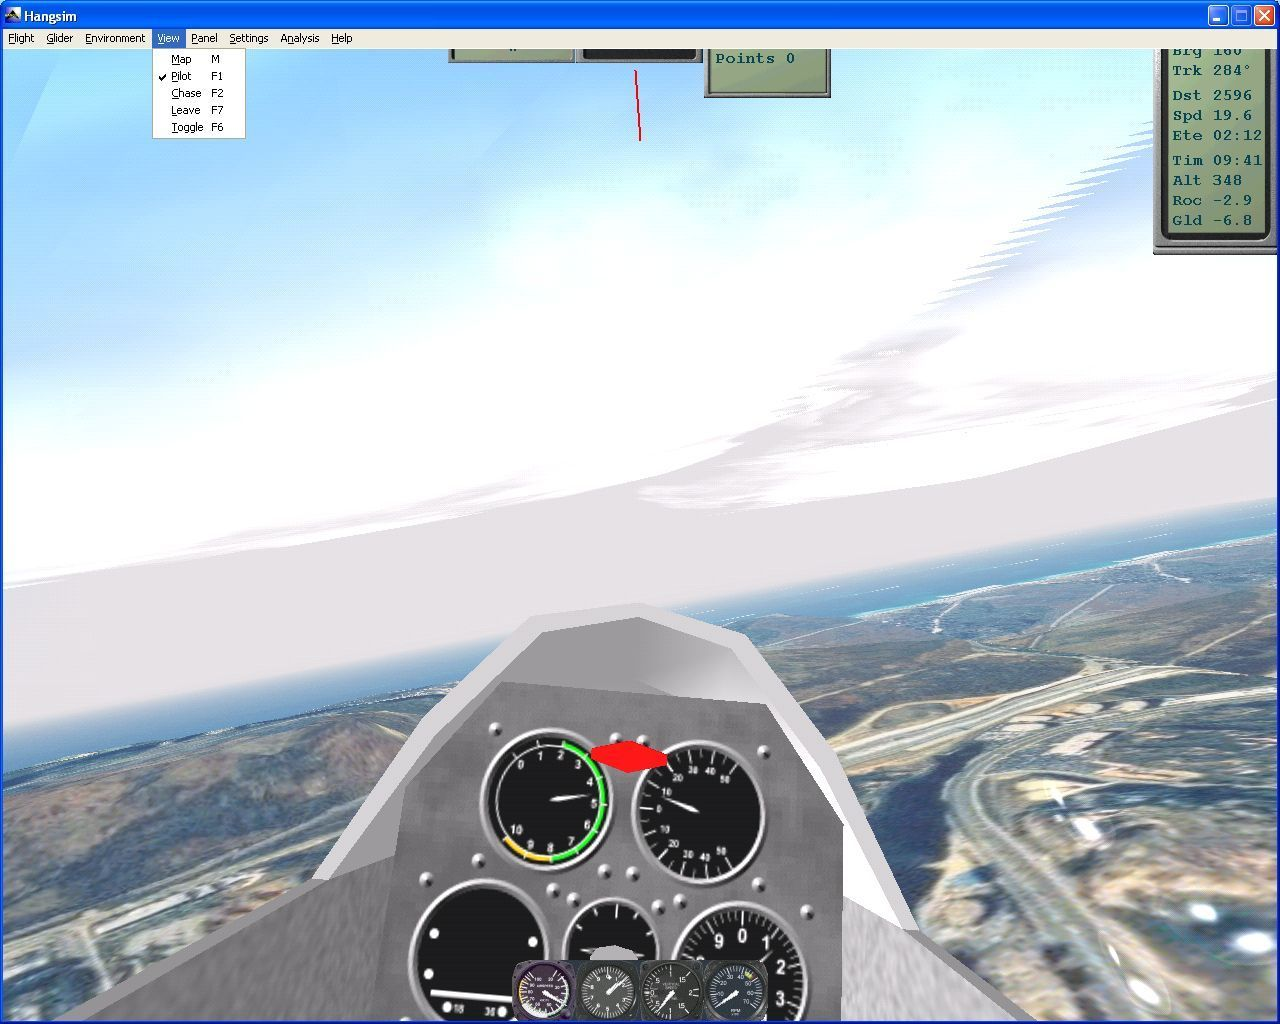 Hangsim Windows Flying the glider in Challenge mode. The menu bar is selected via the ALT key and gives access to many game control options at the expense of some of the information panels